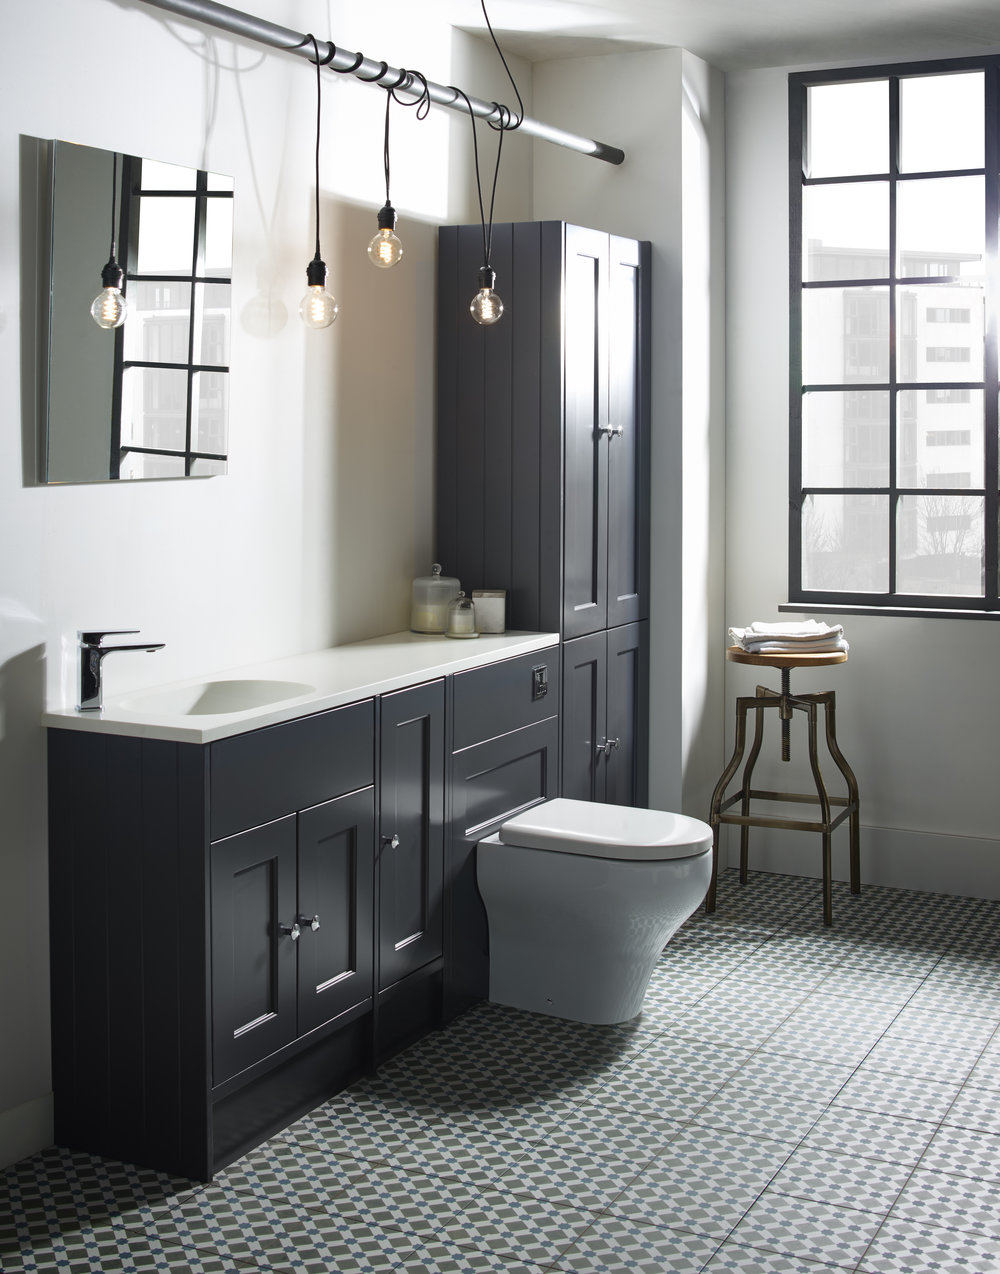 Something old, something new... - Follow our quick guide to introducing 5 traditional features to a modern bathroom and create a fresh, minimal take on a classic theme.